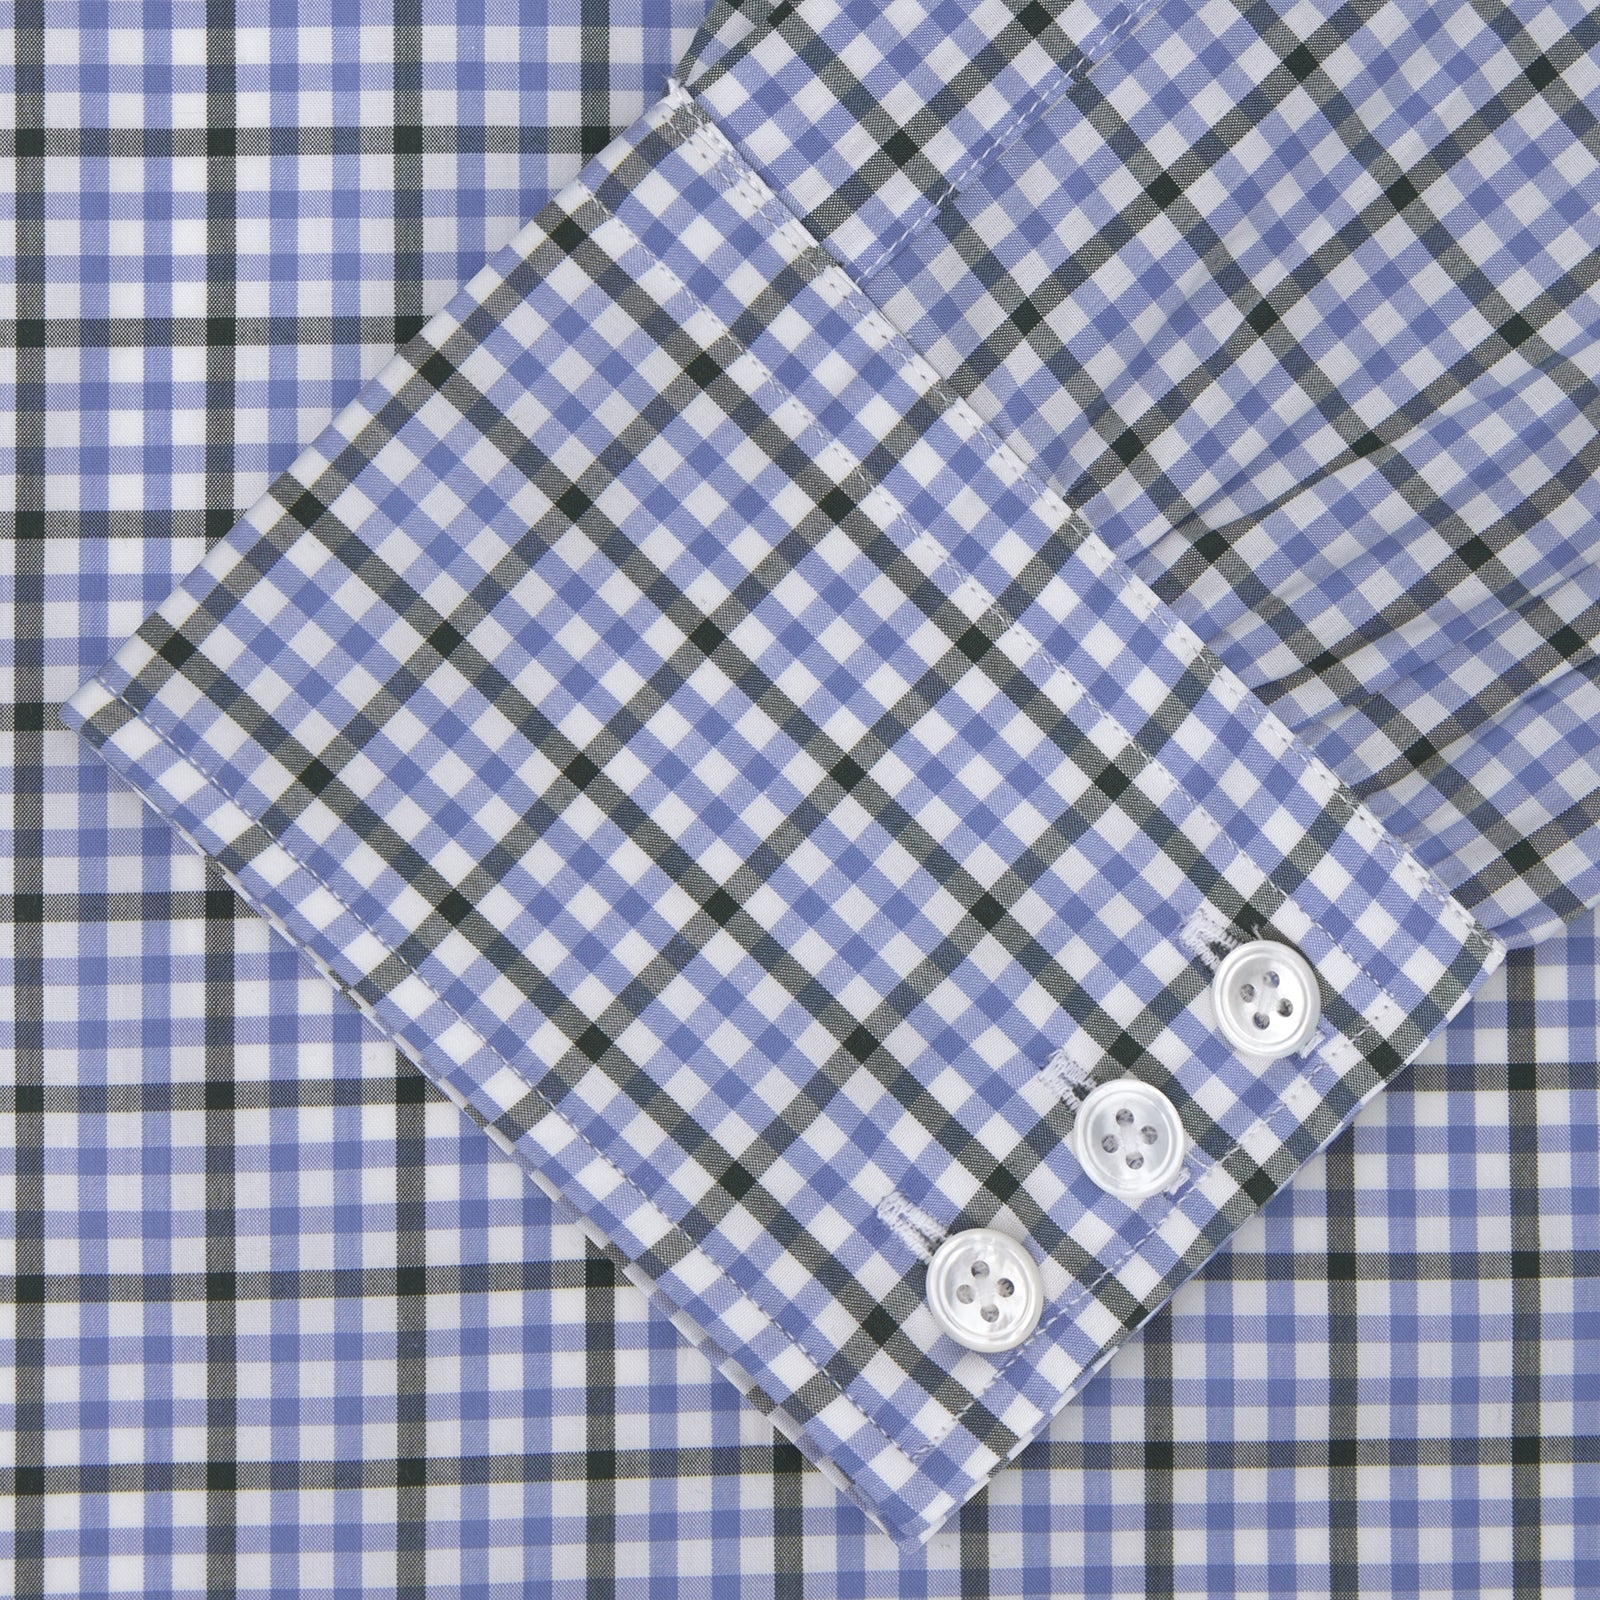 Light Blue and Grey Gingham Check Cotton Shirt with T&A Collar and 3-Button Cuffs